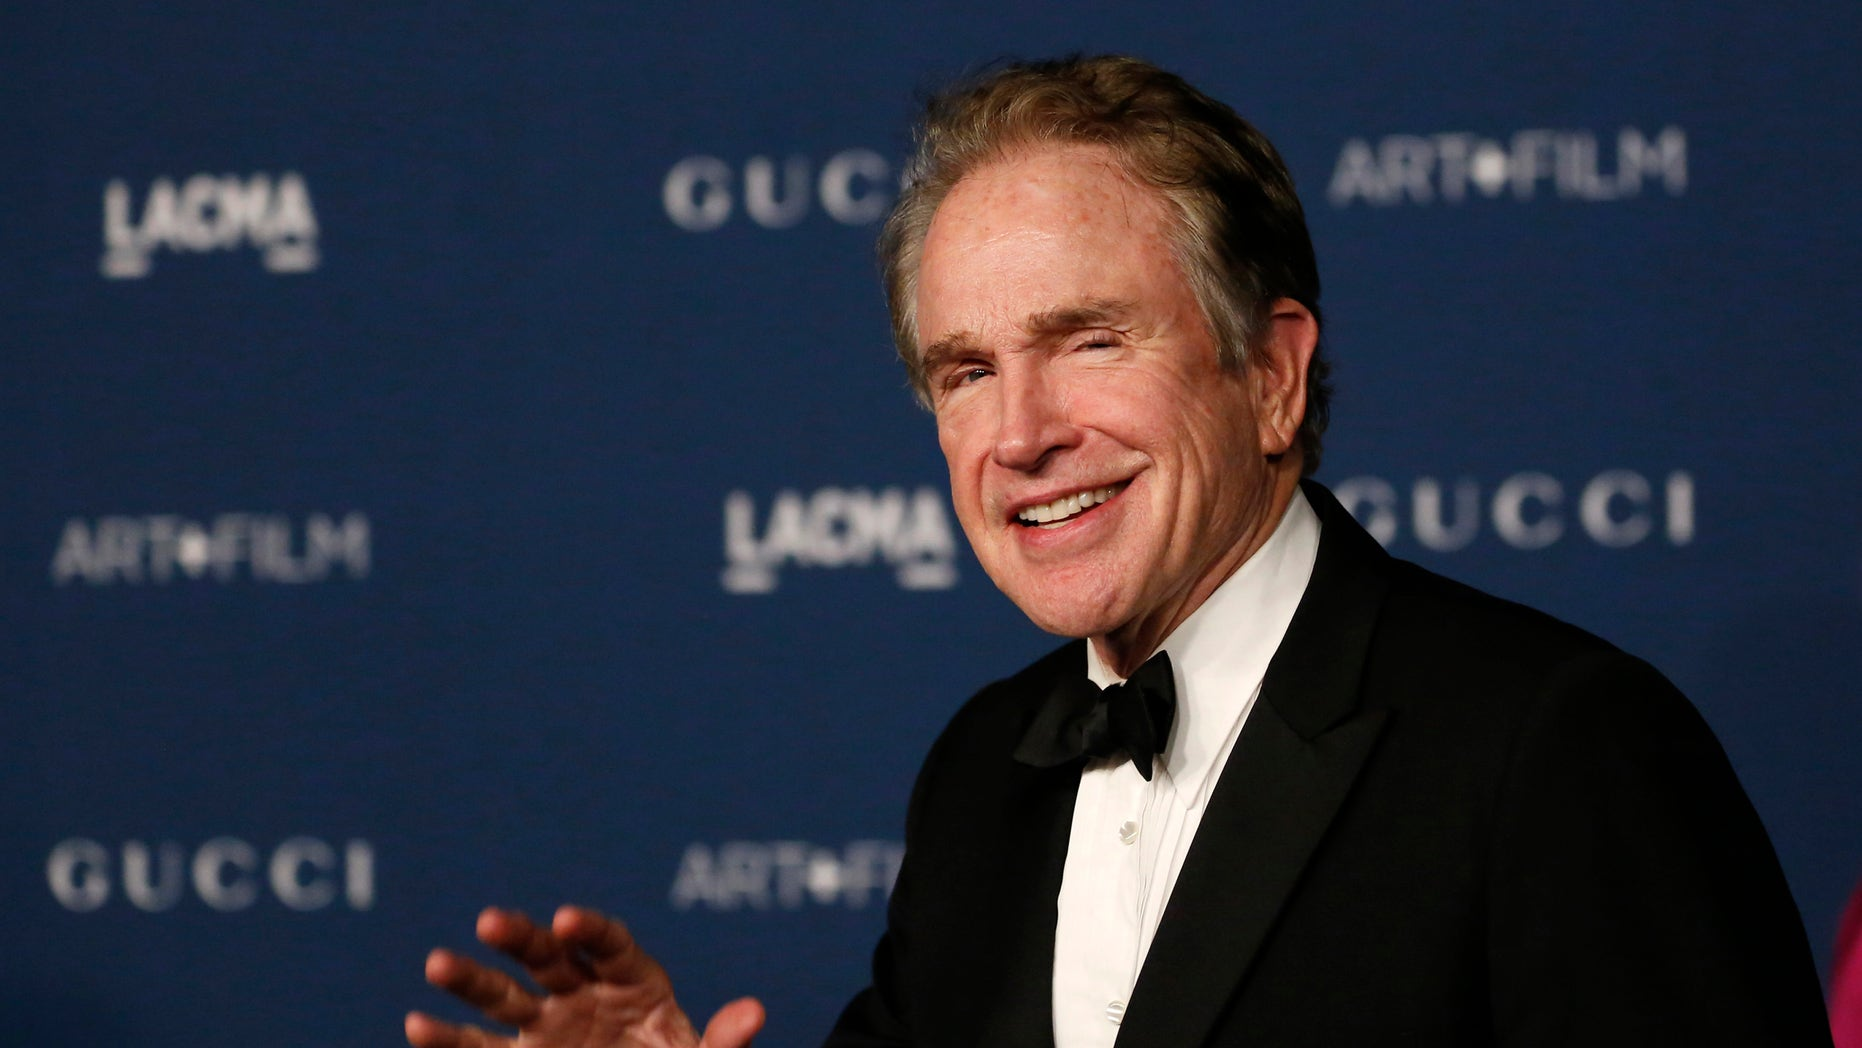 Actor Warren Beatty arrives at the Los Angeles County Museum of Art (LACMA) 2013 Art+Film Gala in Los Angeles, California November 2, 2013.